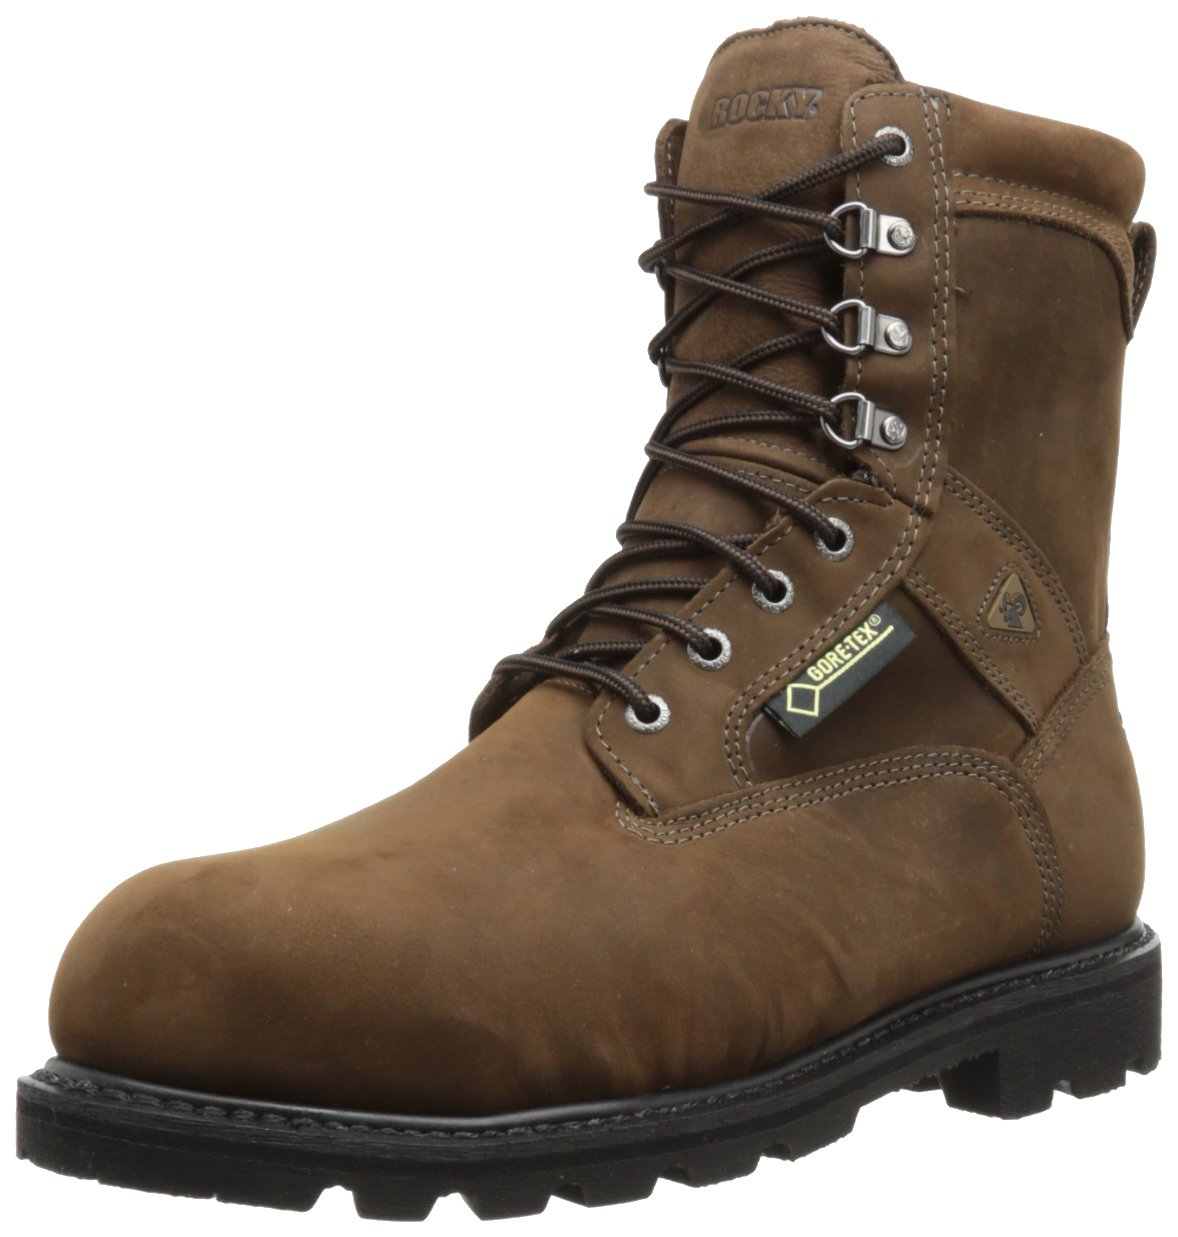 Rocky Men's Ranger Steel Toe Insulated GORE-TEX Boots,Brown,8.5 M US